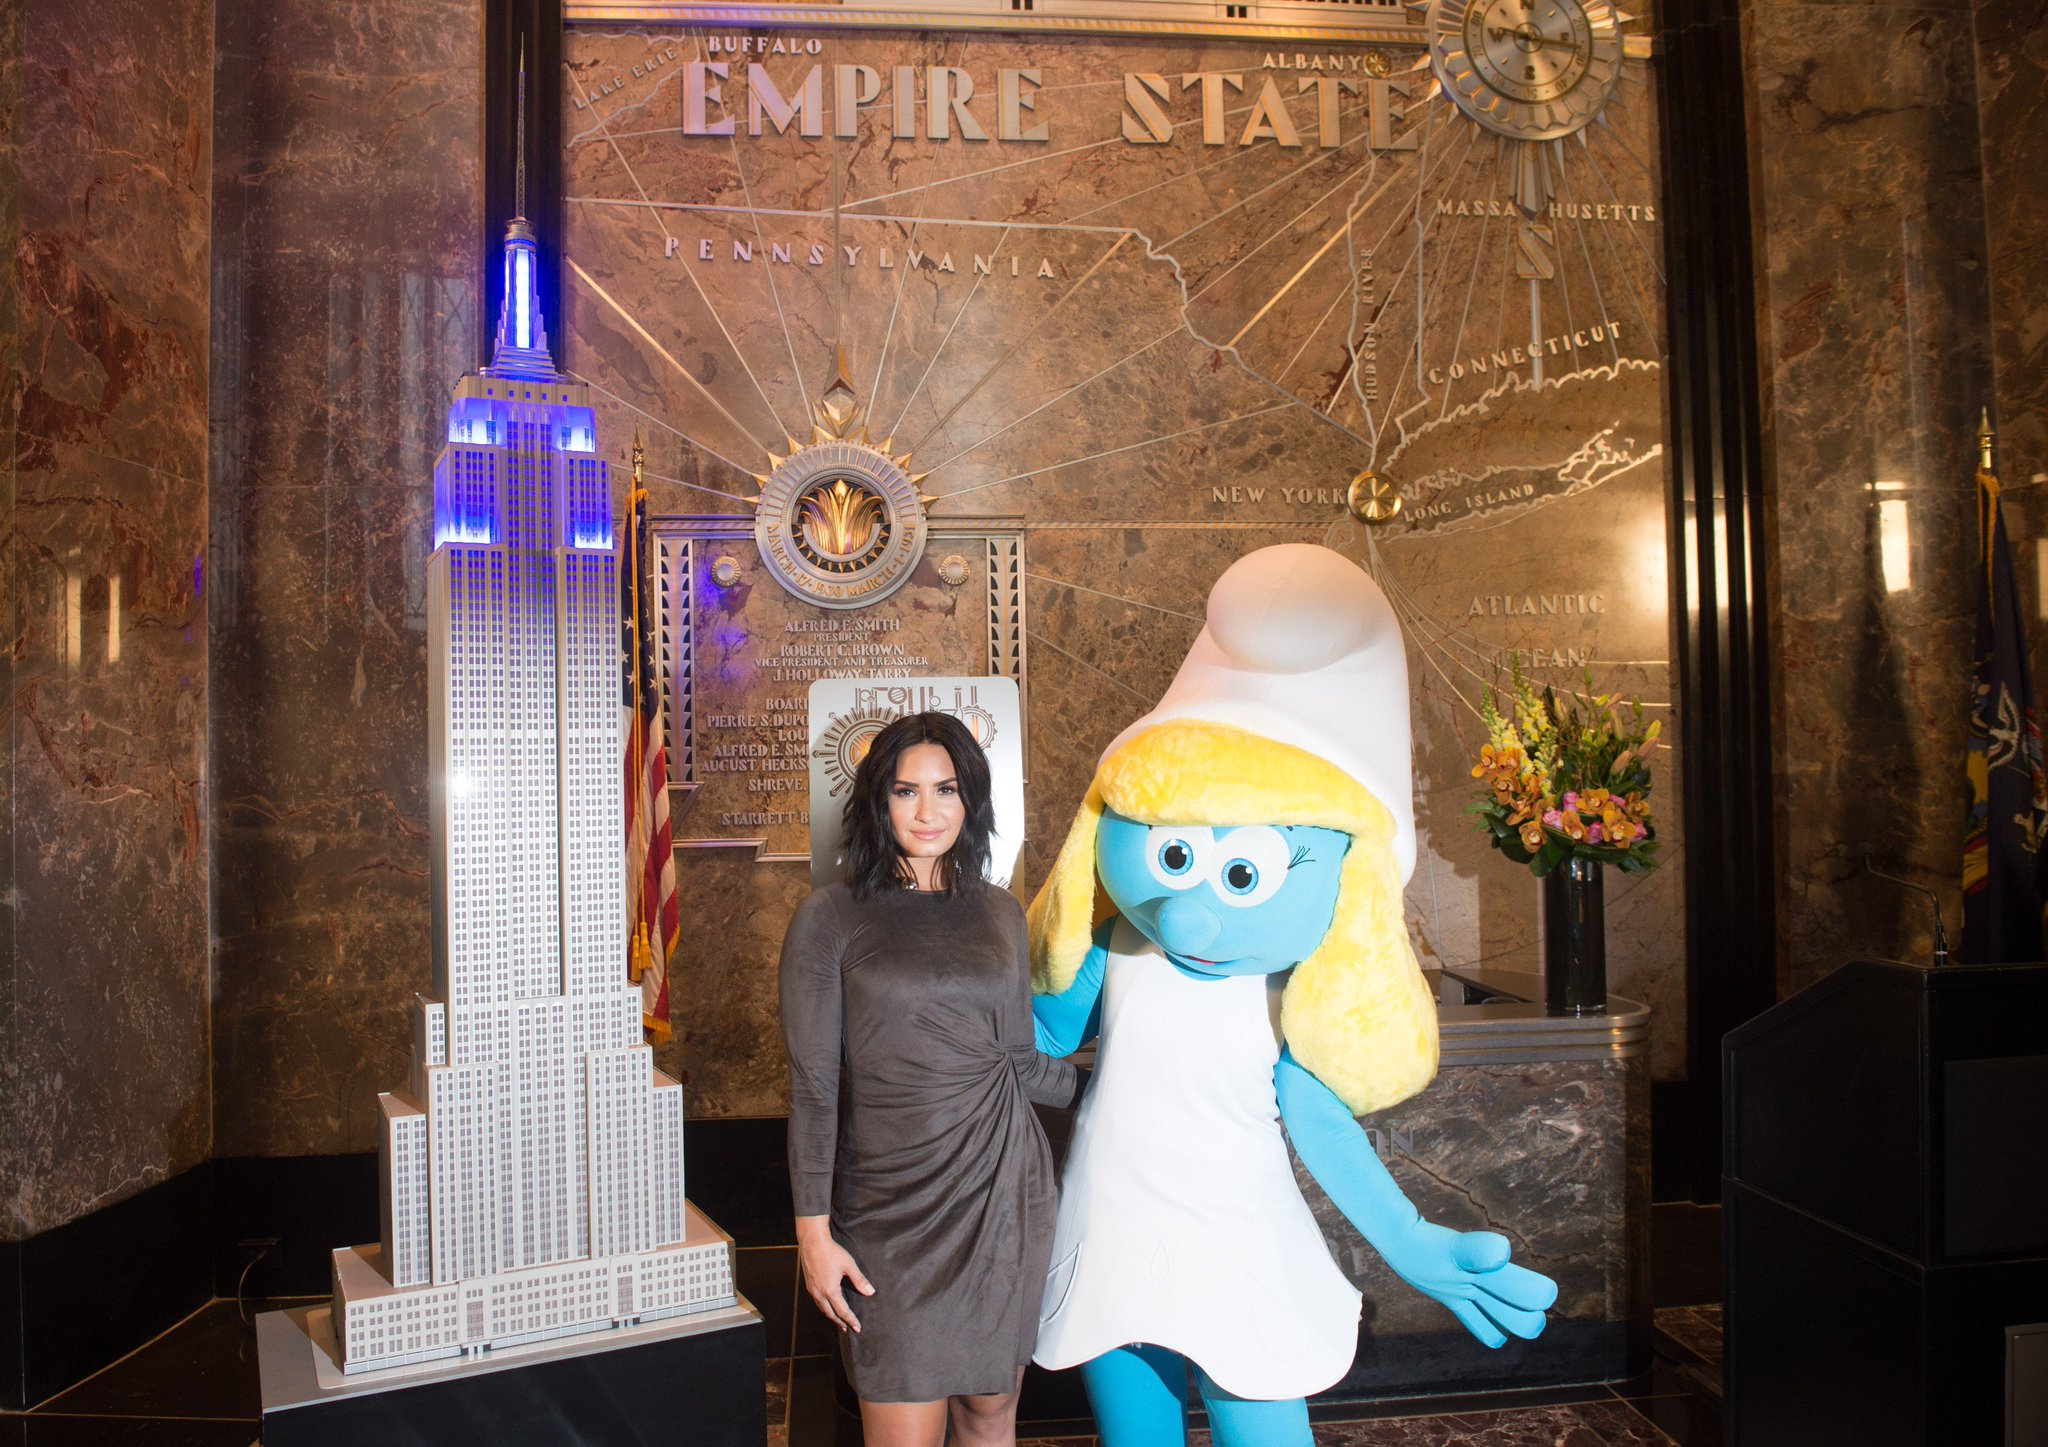 Lit the @EmpireStateBldg up blue for #SmurfsMovie and #InternationalDayOfHappiness with the @UN and @UNICEF today! �� https://t.co/ZICrPZiVU3